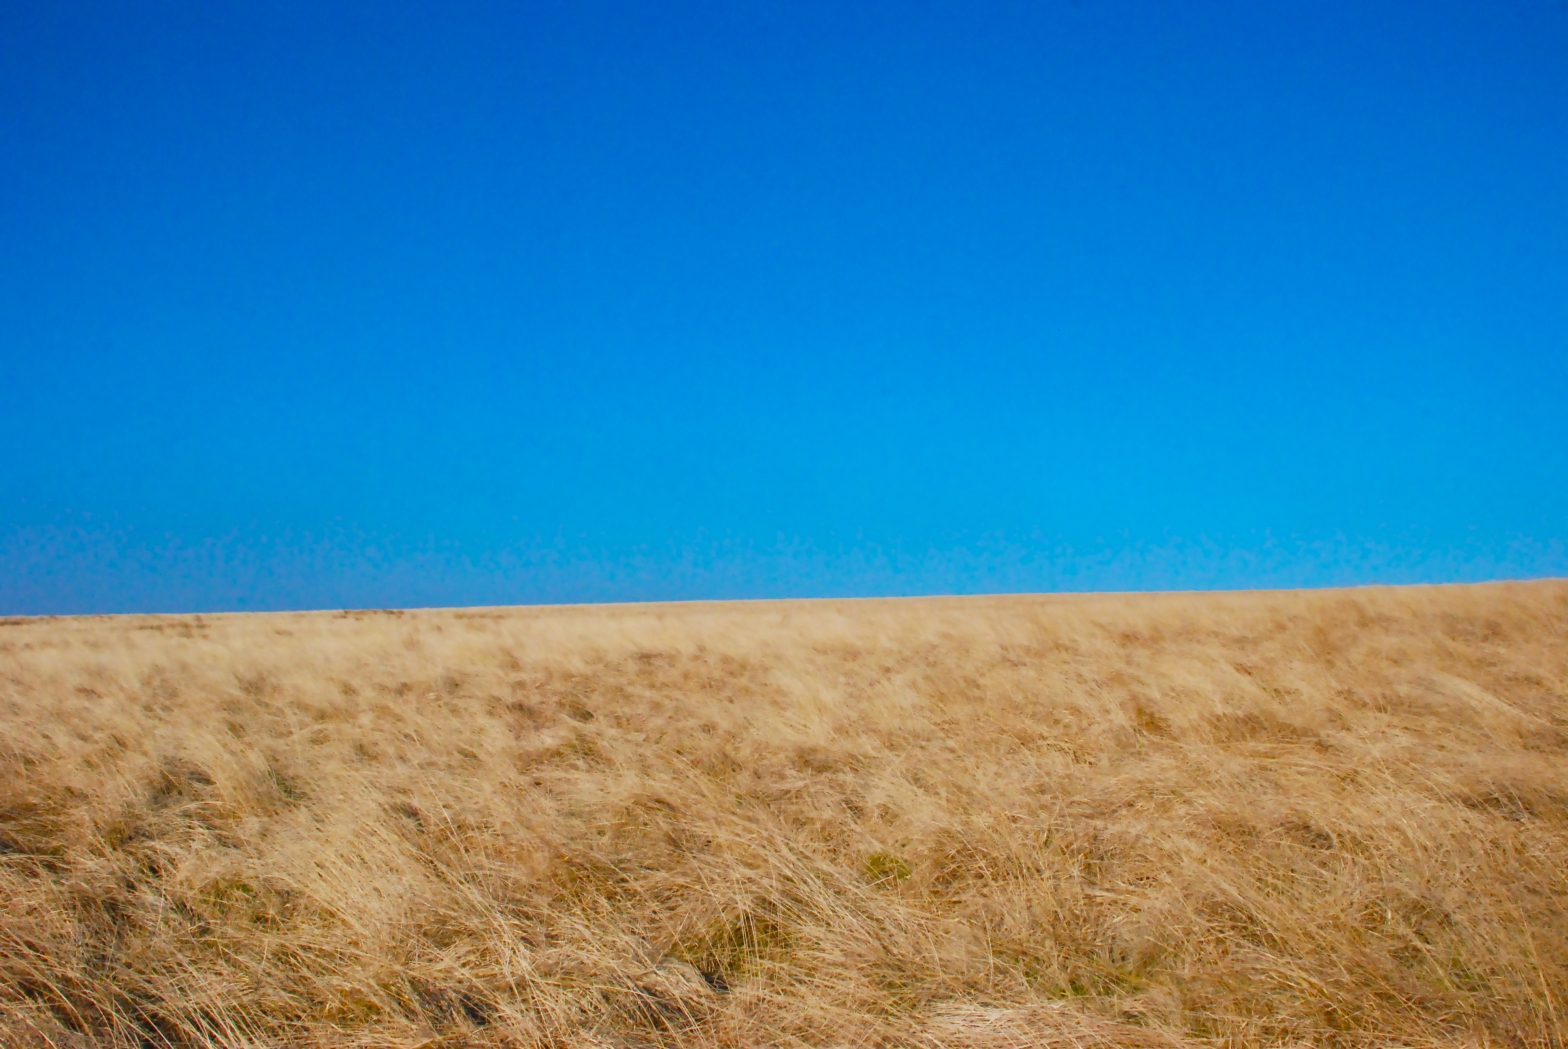 about image a dried grass moors with bright blue sky